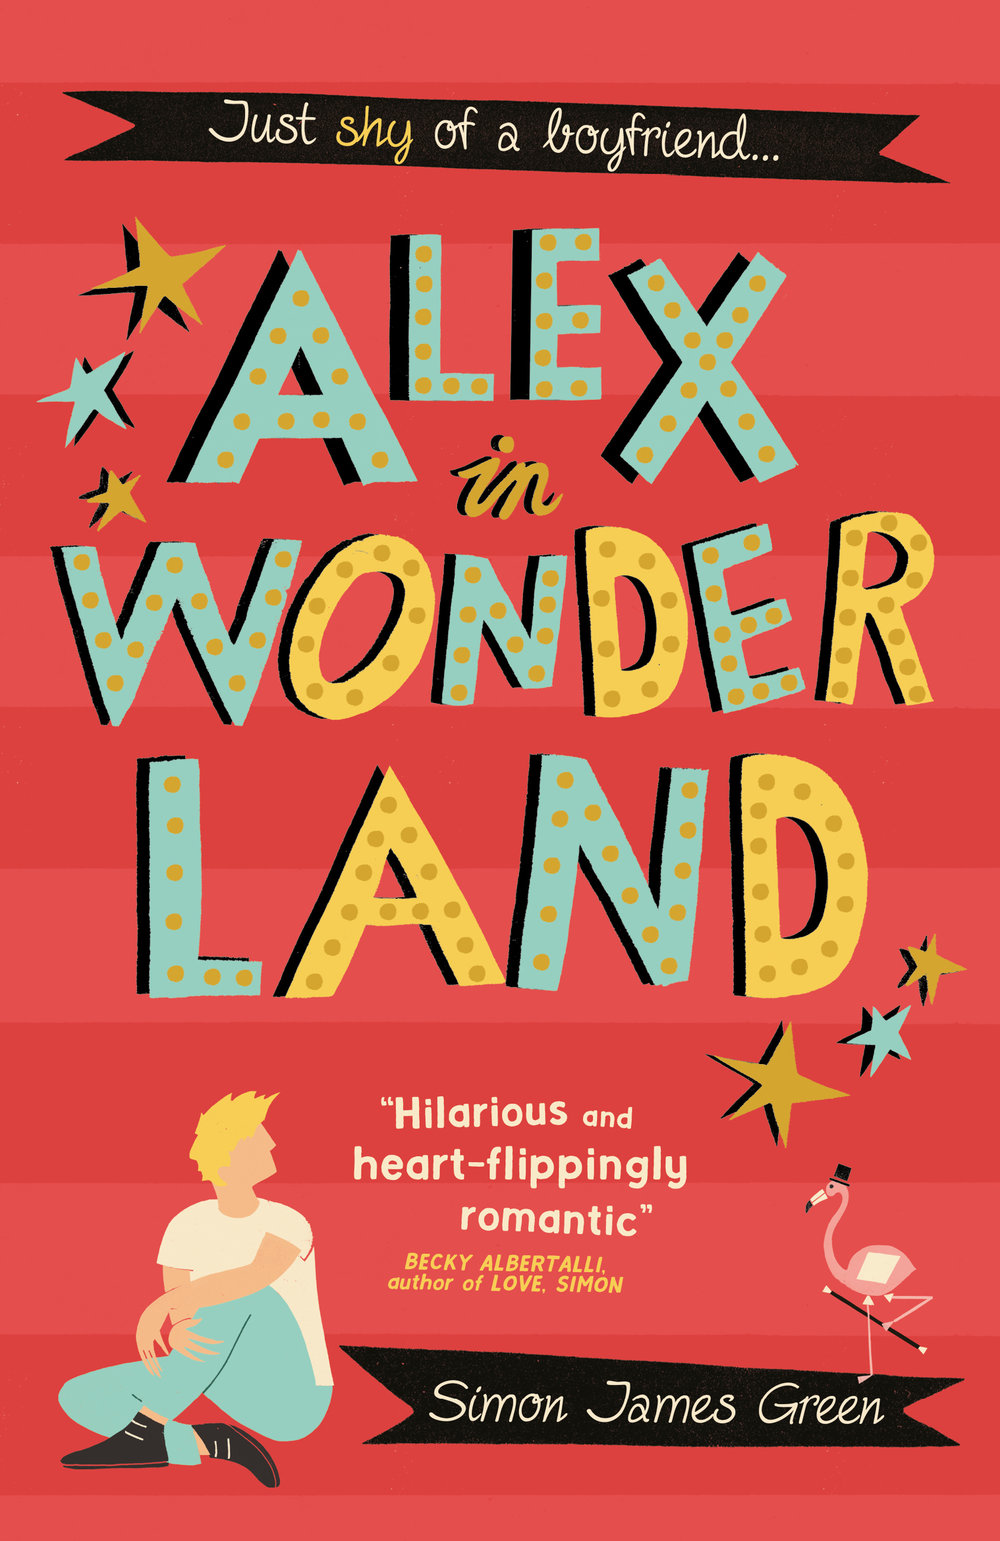 A NOVEL THAT WILL HAVE YOU LAUGHING OUT LOUD ONE MINUTE, AND SWOONING THE NEXT! - In the town of Newsands, painfully shy Alex is abandoned by his two best friends for the summer. But he unexpectedly lands a part-time job at Wonderland, a run-down amusement arcade on the seafront, where he gets to know the other teen misfits who work there. Alex starts to come out of his shell, and even starts to develop feelings for co-worker Ben... who, as Alex's bad luck would have it, has a girlfriend.Then as debtors close in on Wonderland and mysterious, threatening notes start to appear, Alex and his new friends take it on themselves to save their declining employer. But, like everything in Wonderland, nothing is quite what it seems...